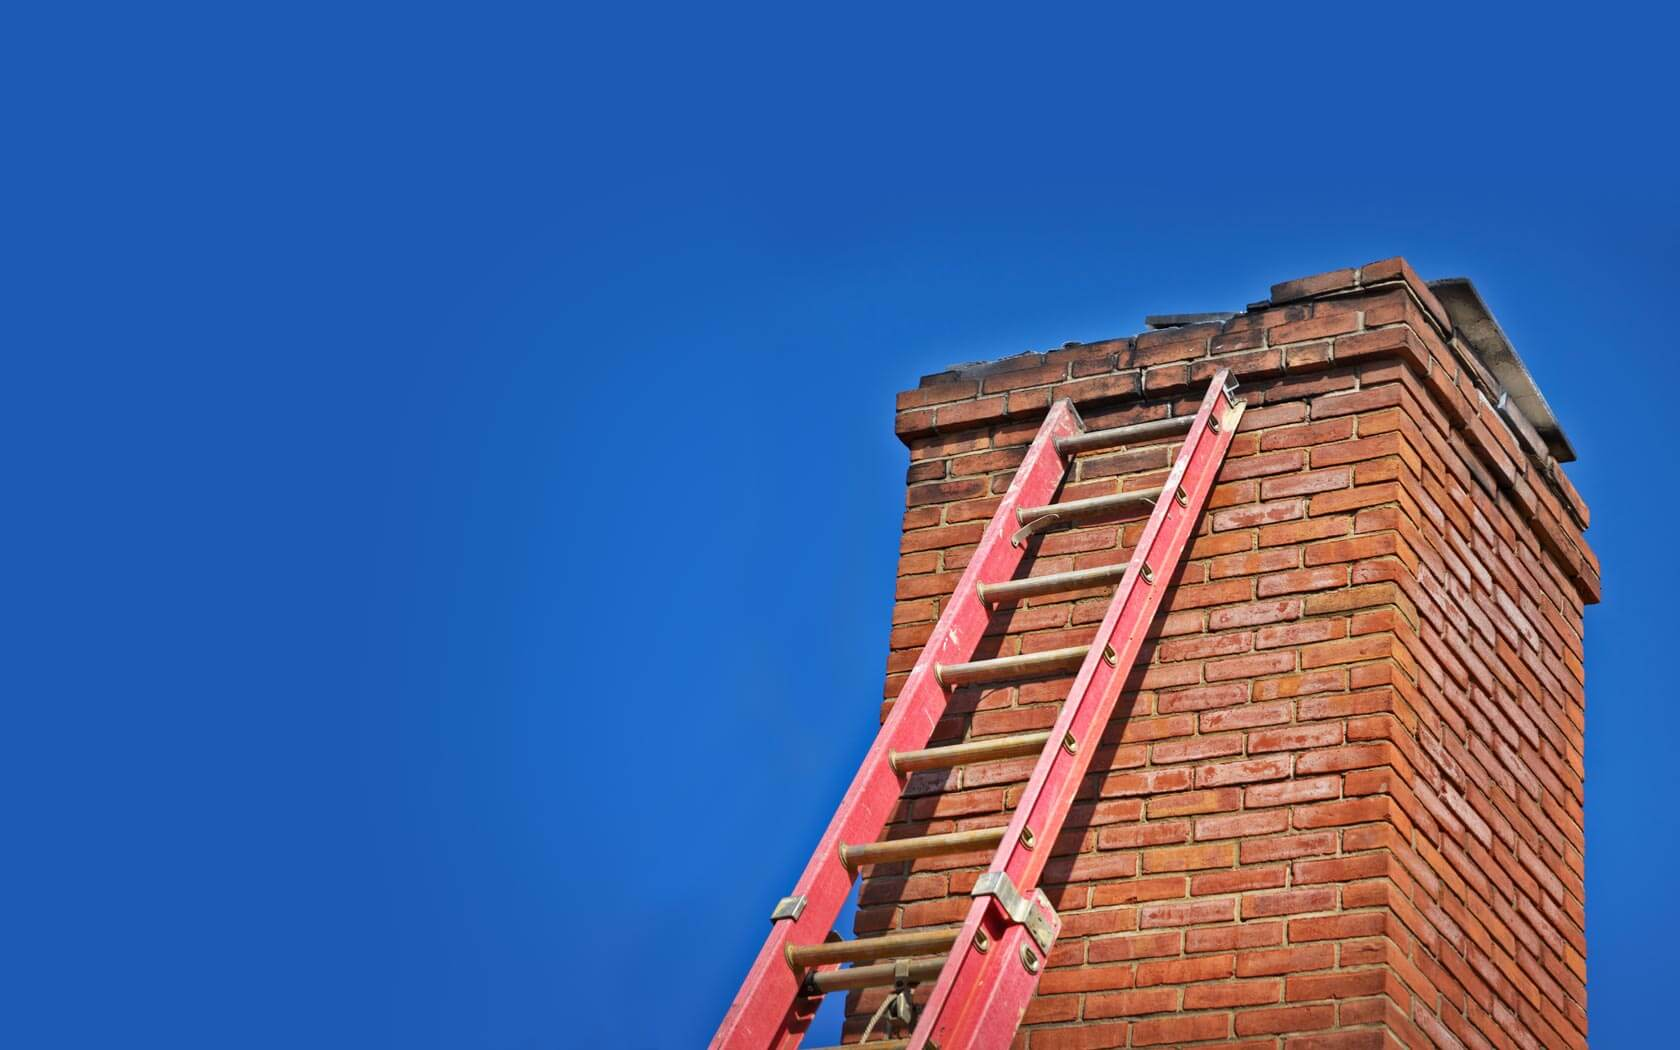 Wayland Chimney Cleaning